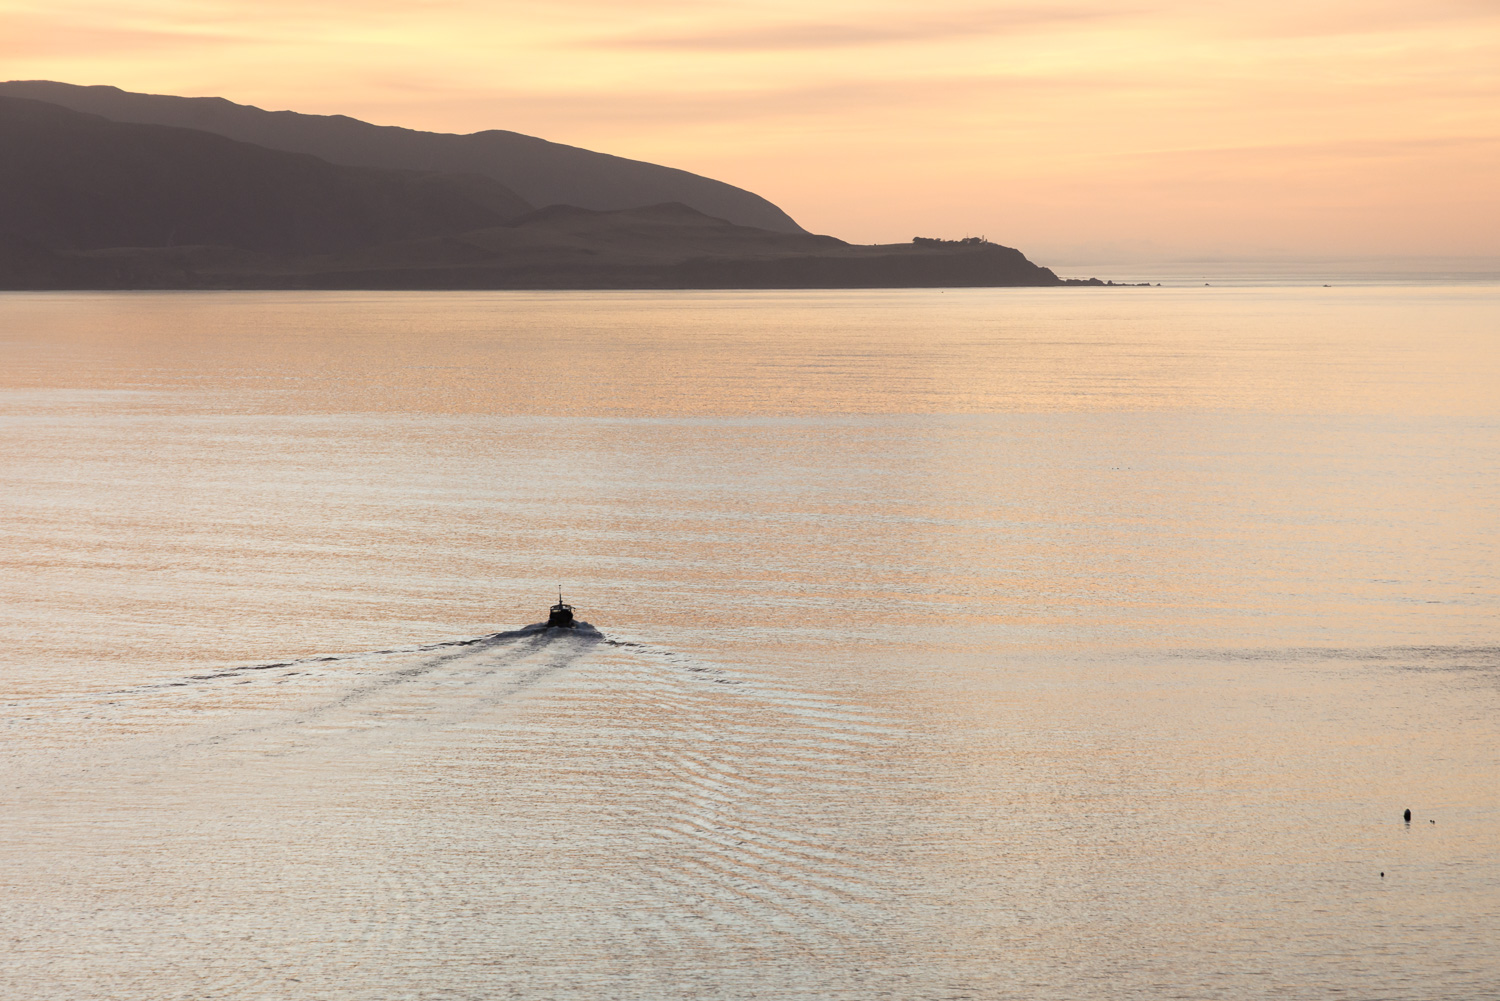 A fishing boat heads out from Island Bay at sunrise, the golden sky reflected in the calm water.